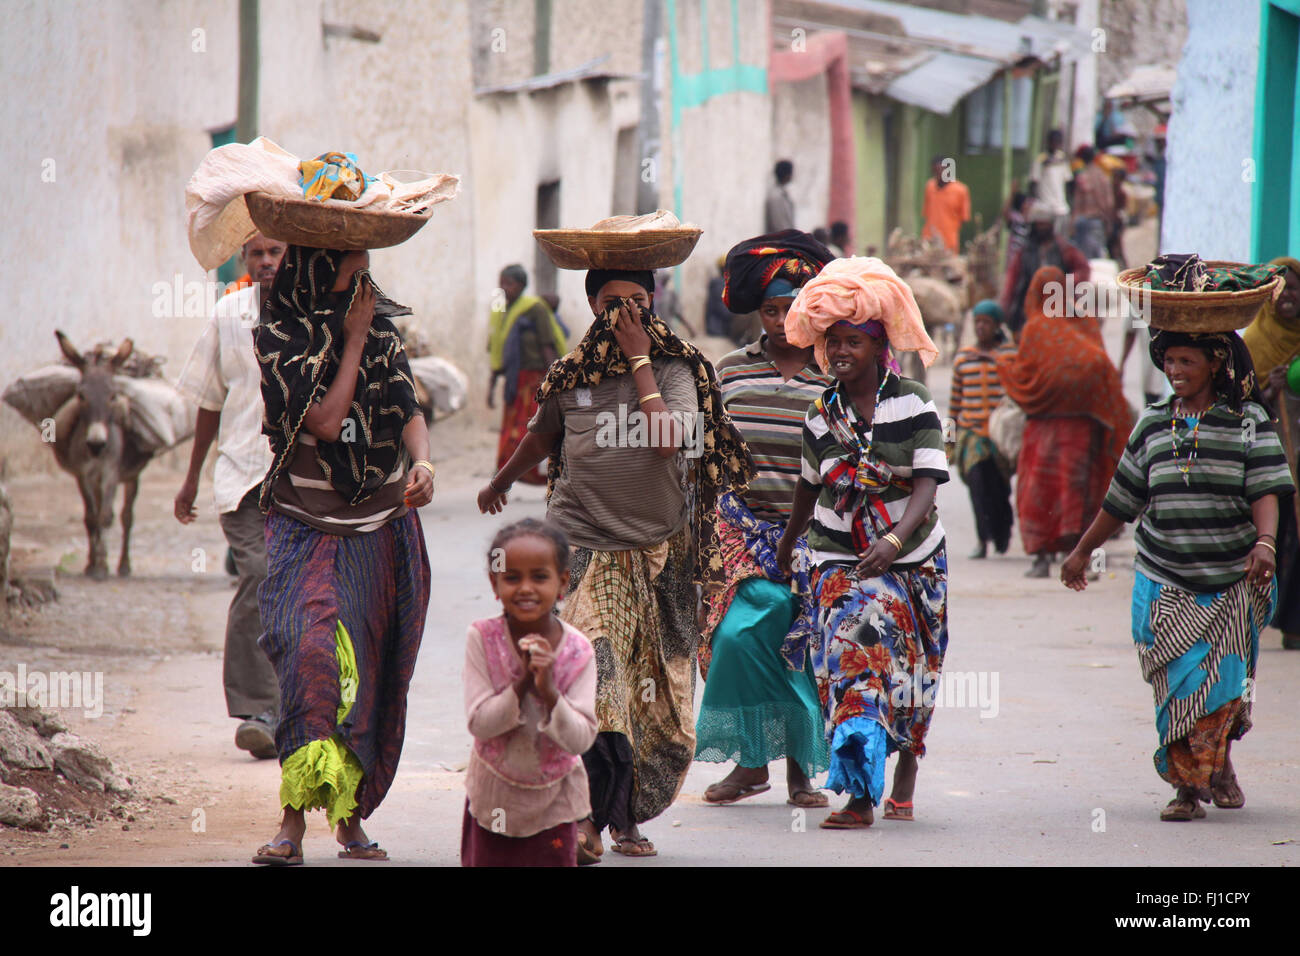 Group of women walking in a street of Harar , Ethiopia - Stock Image